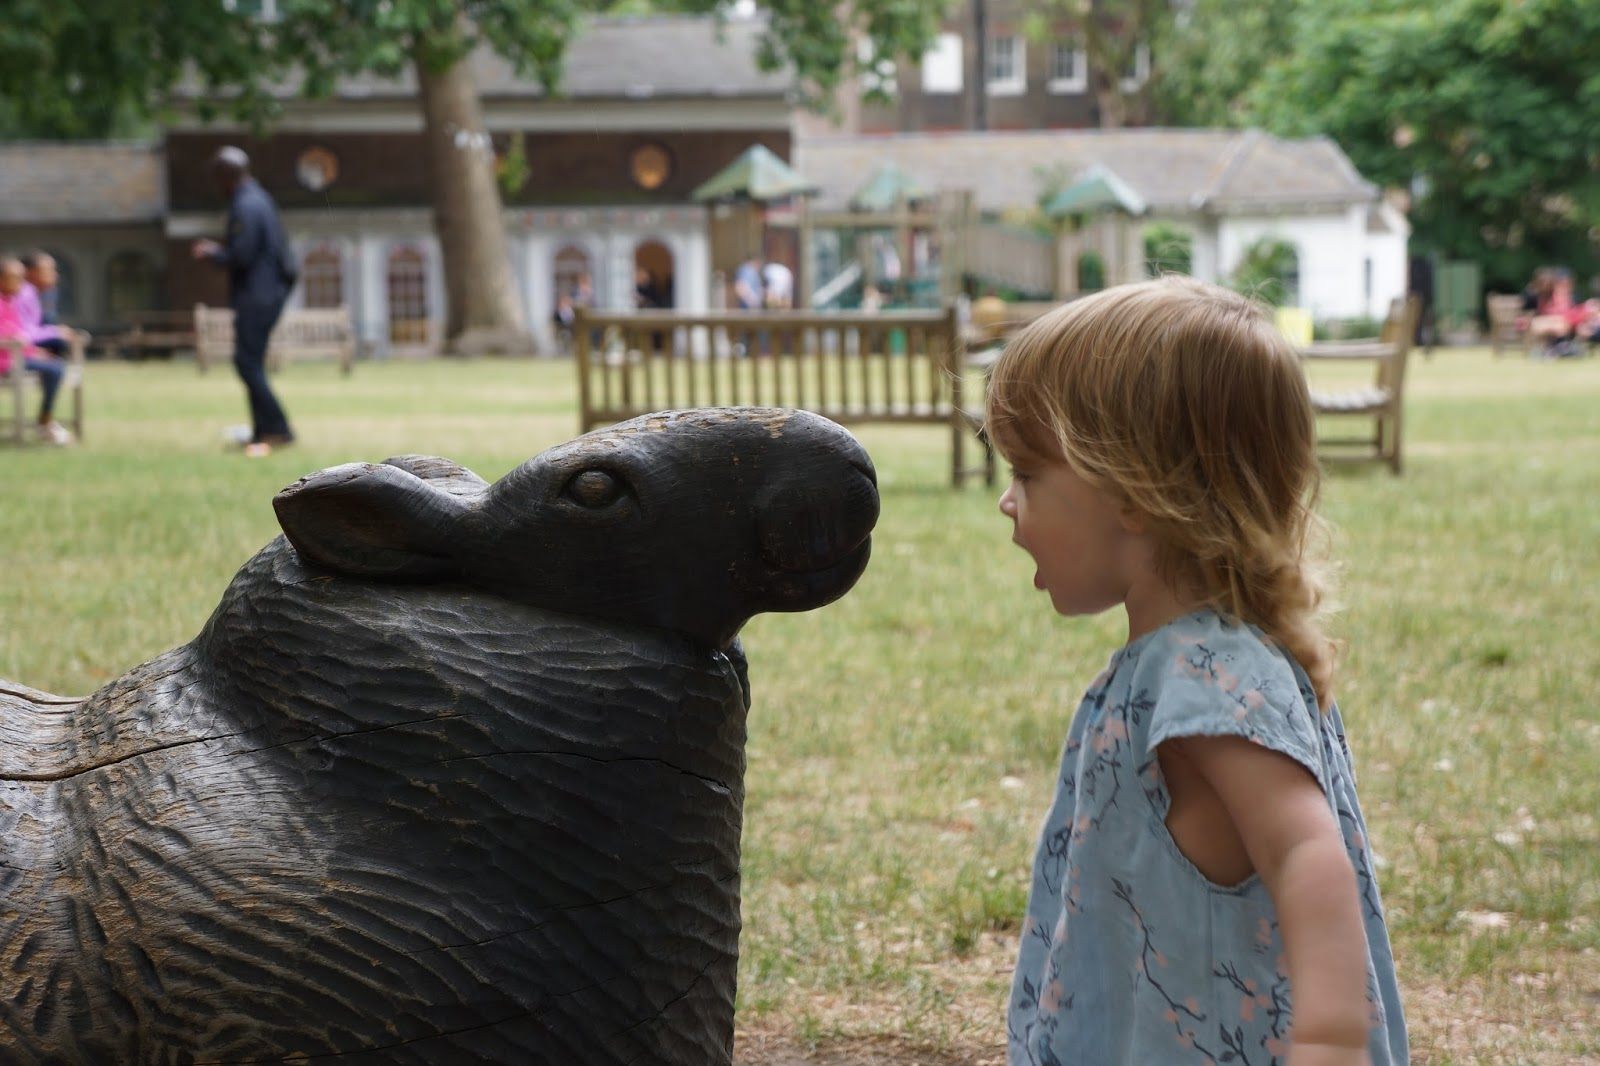 toddler and sheep statue looking at each other at coram's fields park